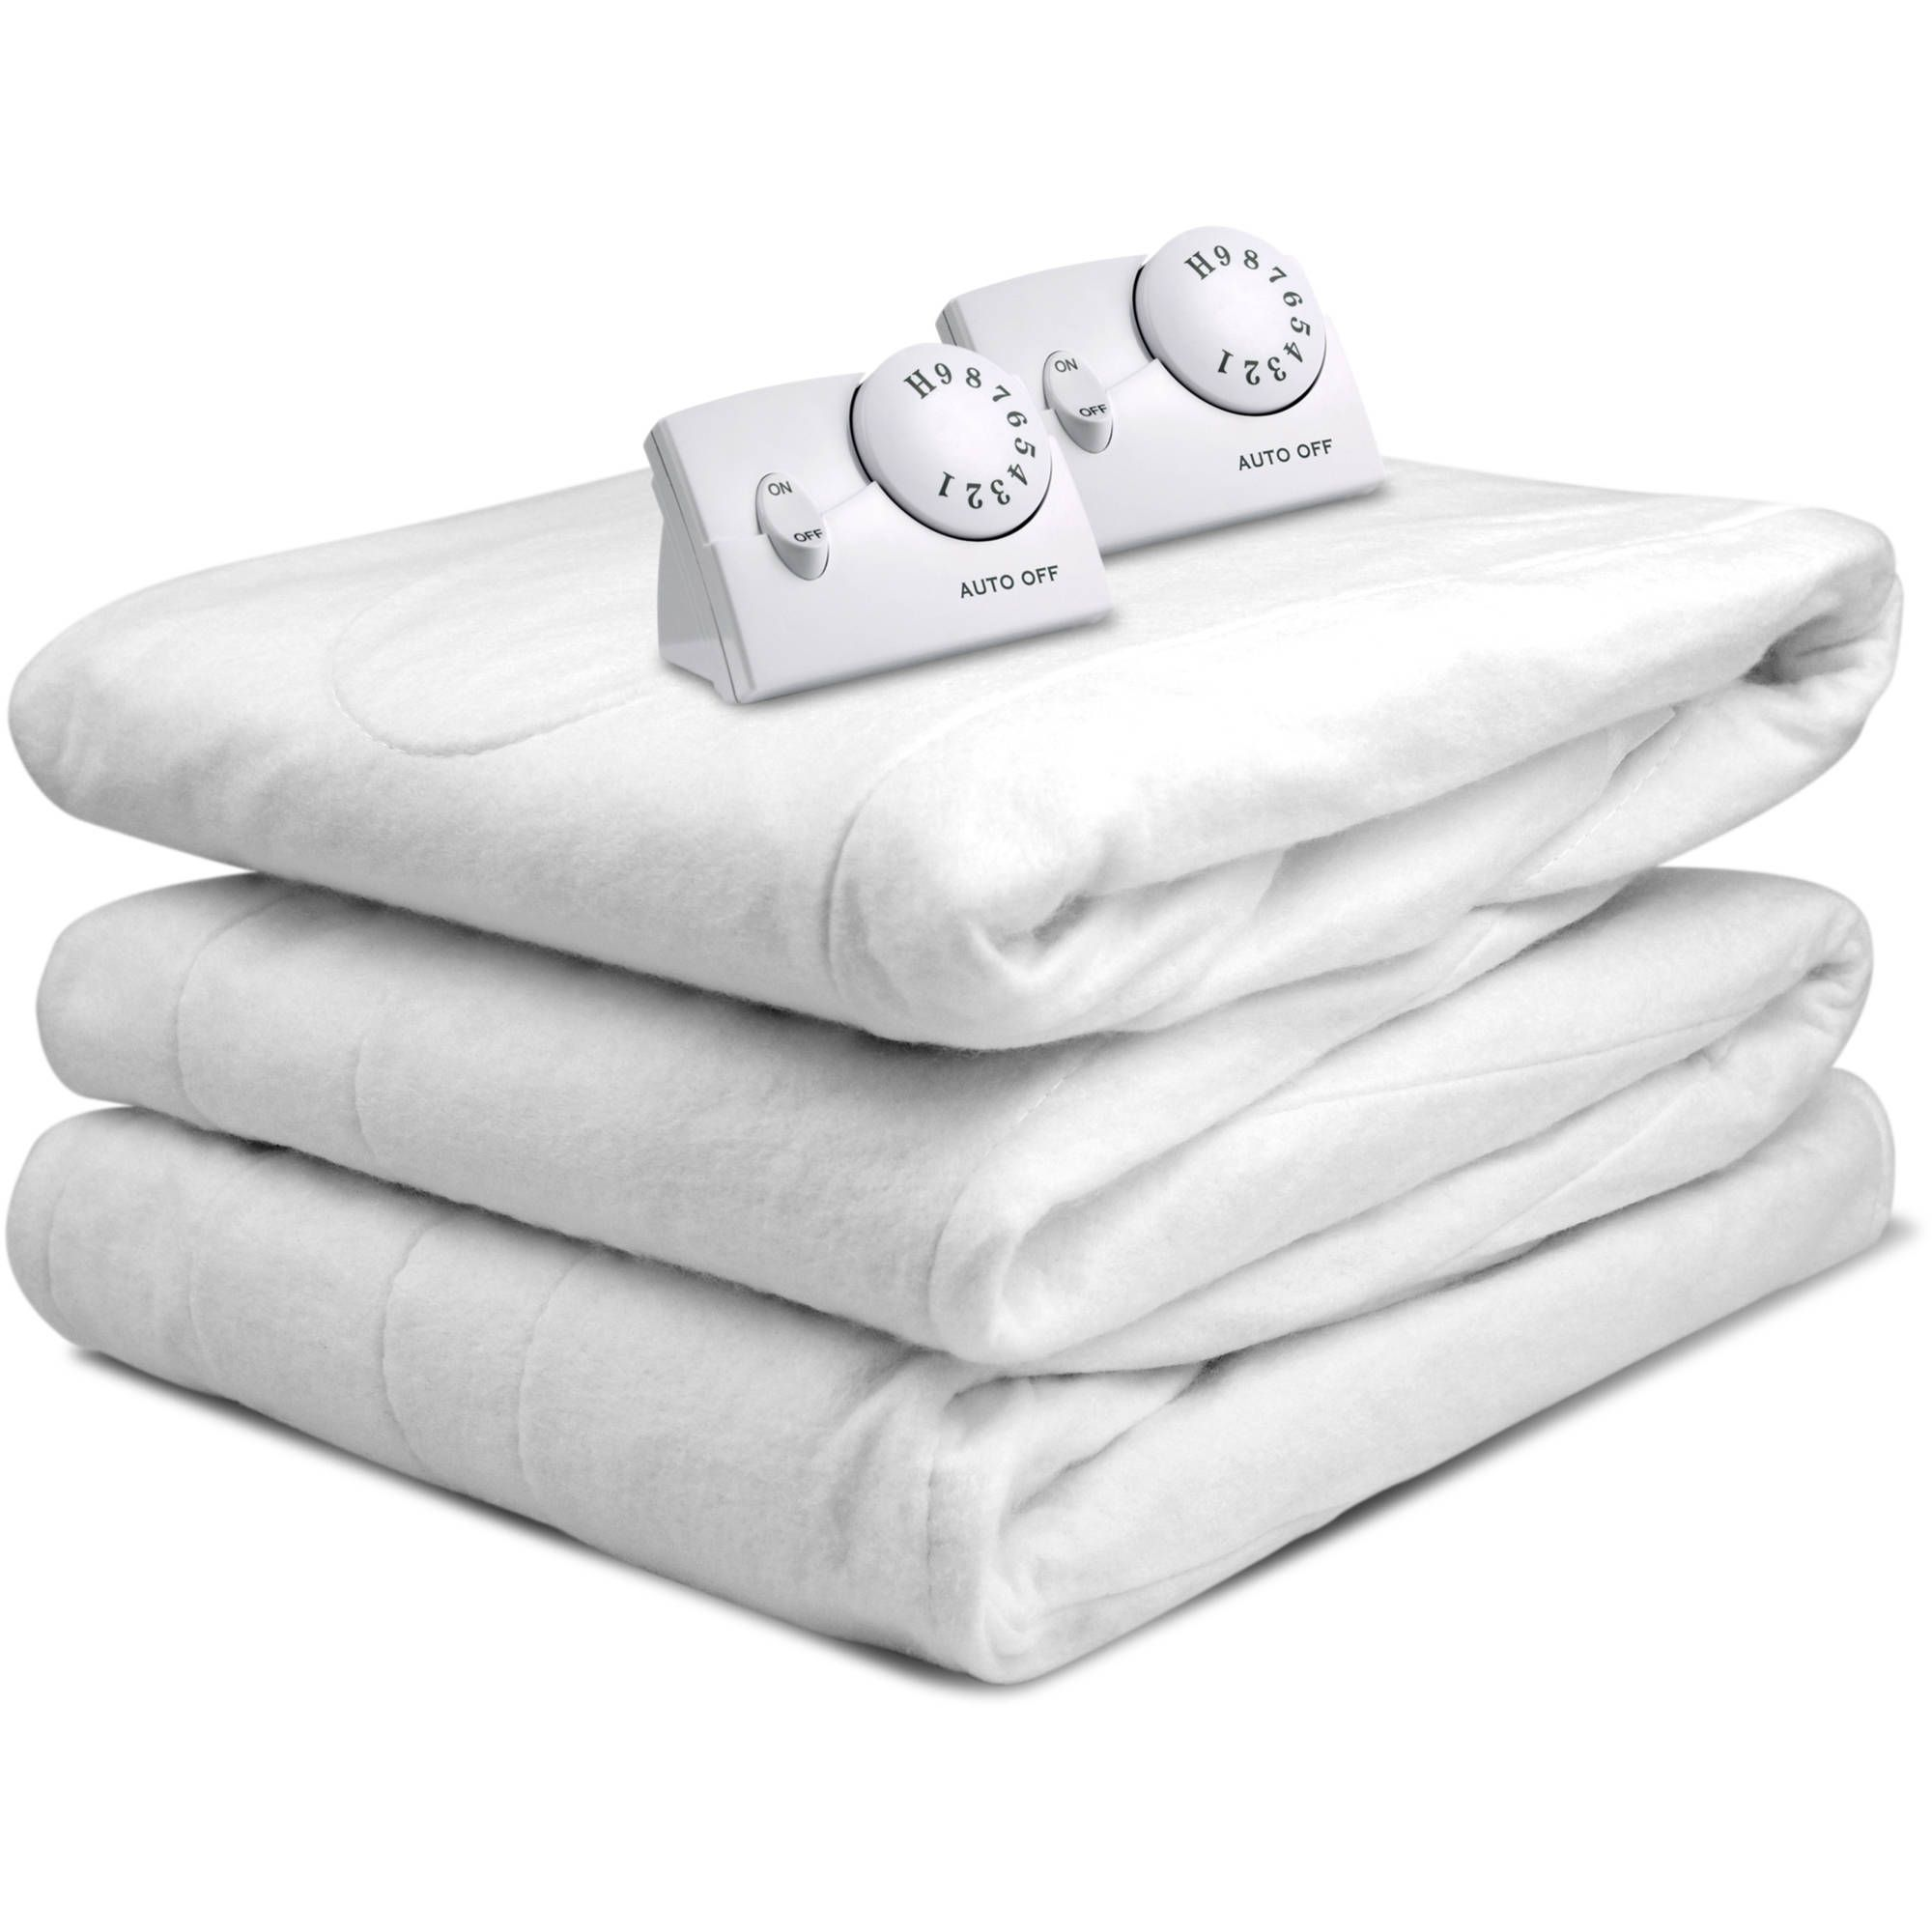 Biddeford Heated Mattress Pad Walmart Com Heated Mattress Pad Electric Mattress Pad Mattress Pad